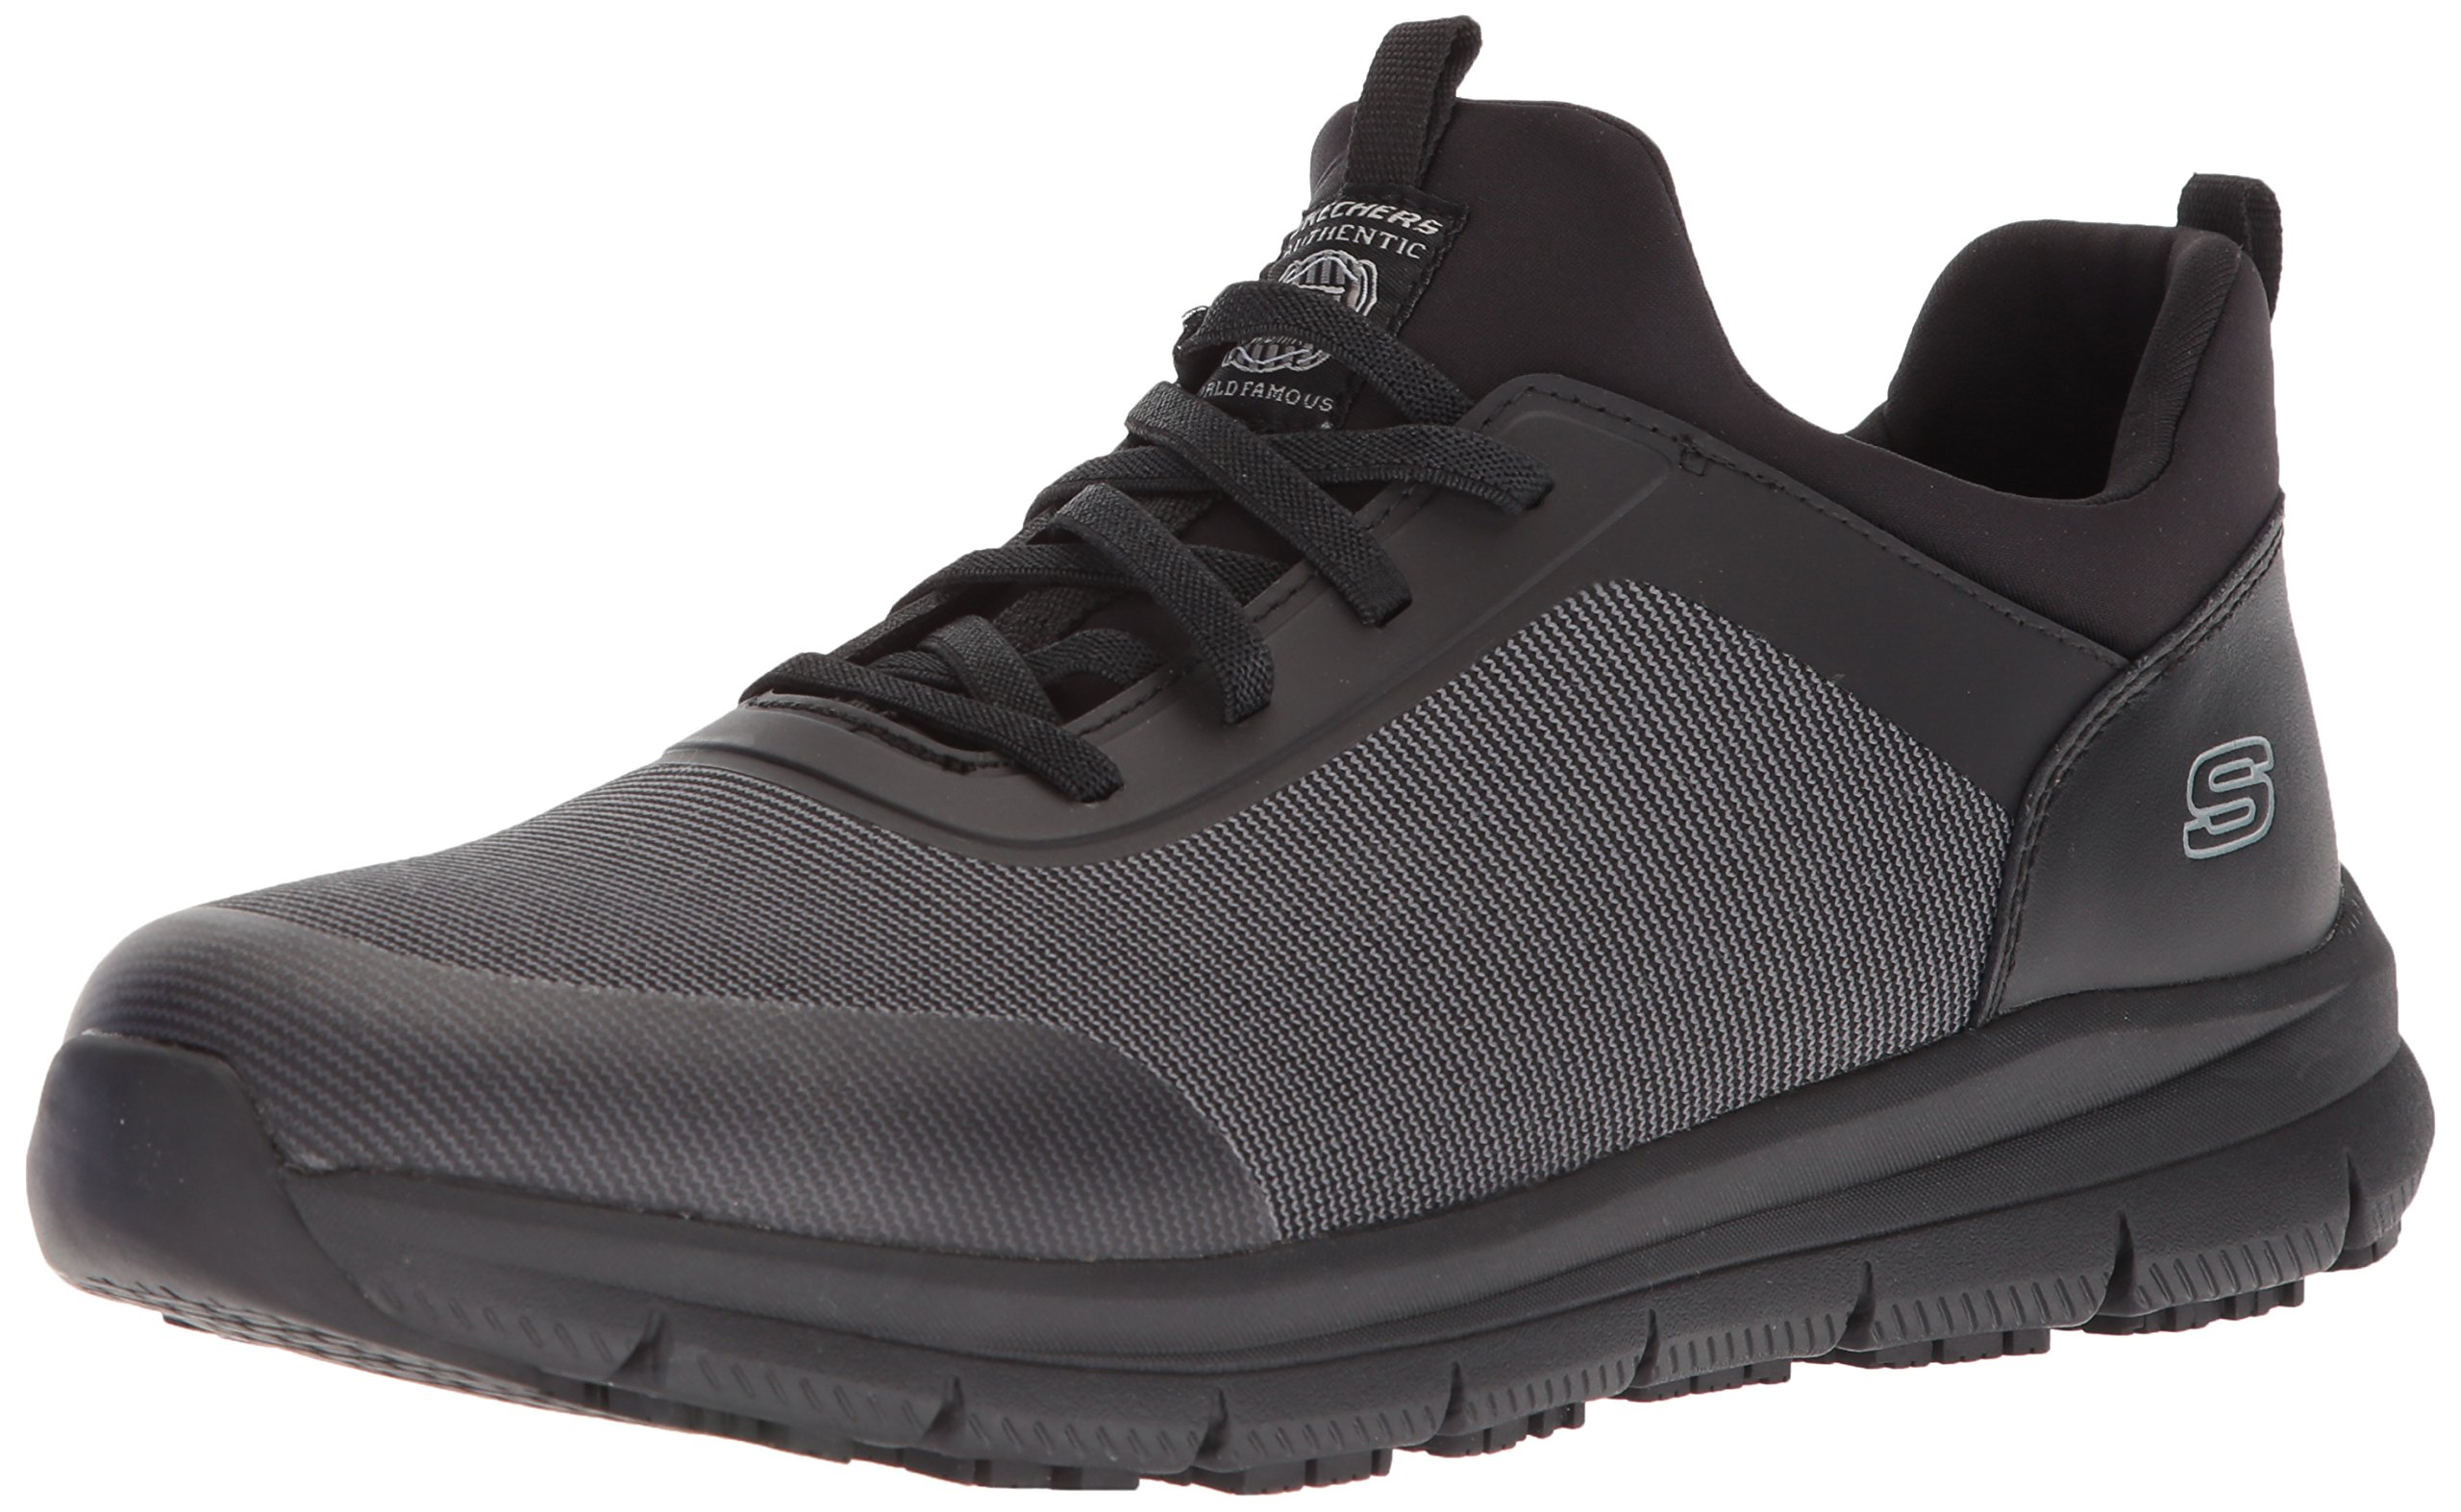 Skechers for Work Men's Wishaw Food Service Shoe,Black Charcoal Textile,9.5 M US by Skechers